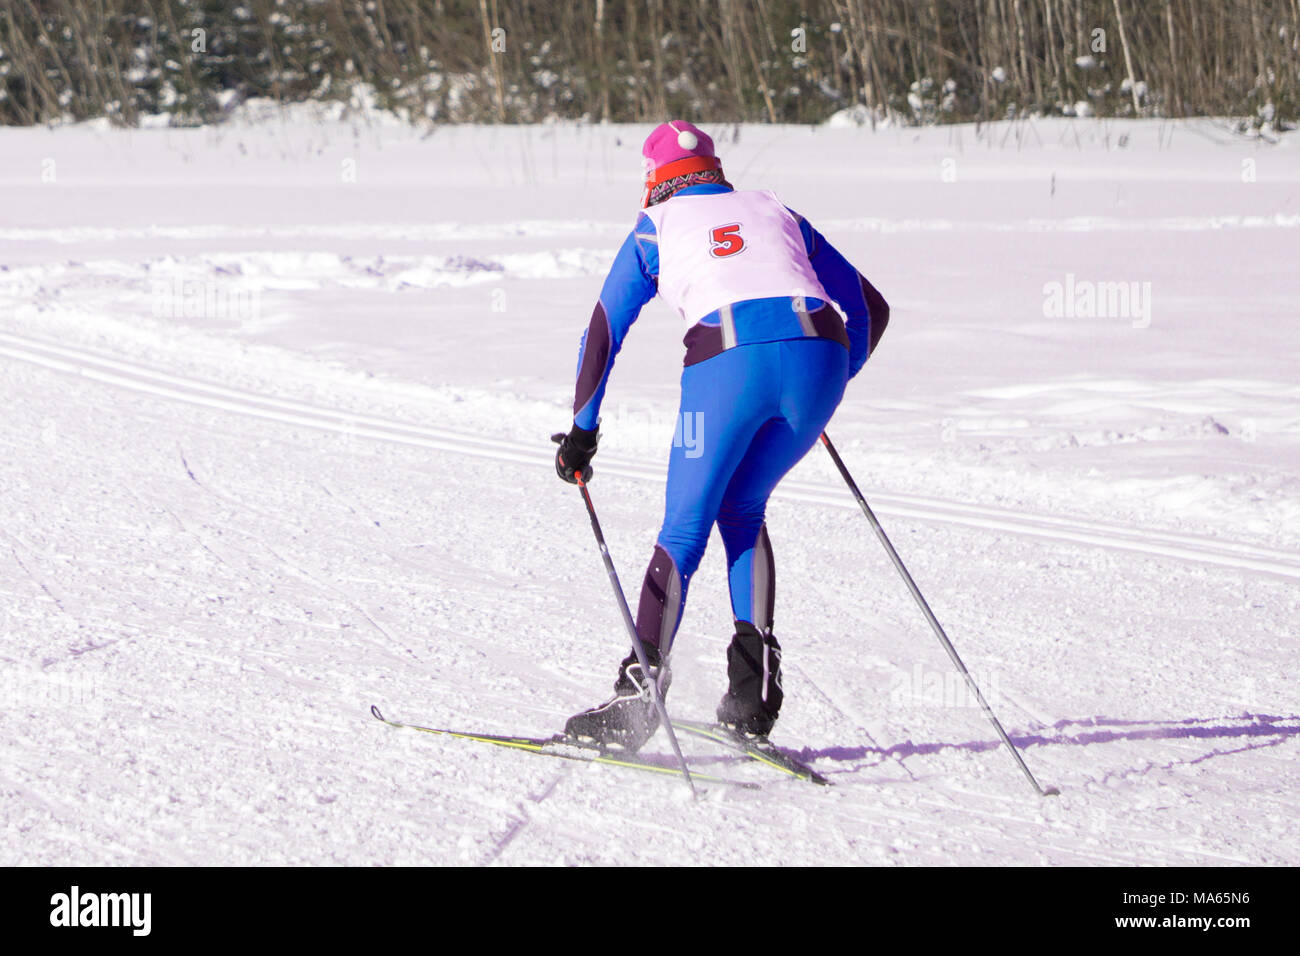 Competitions in skiing people Ski marathon - Stock Image